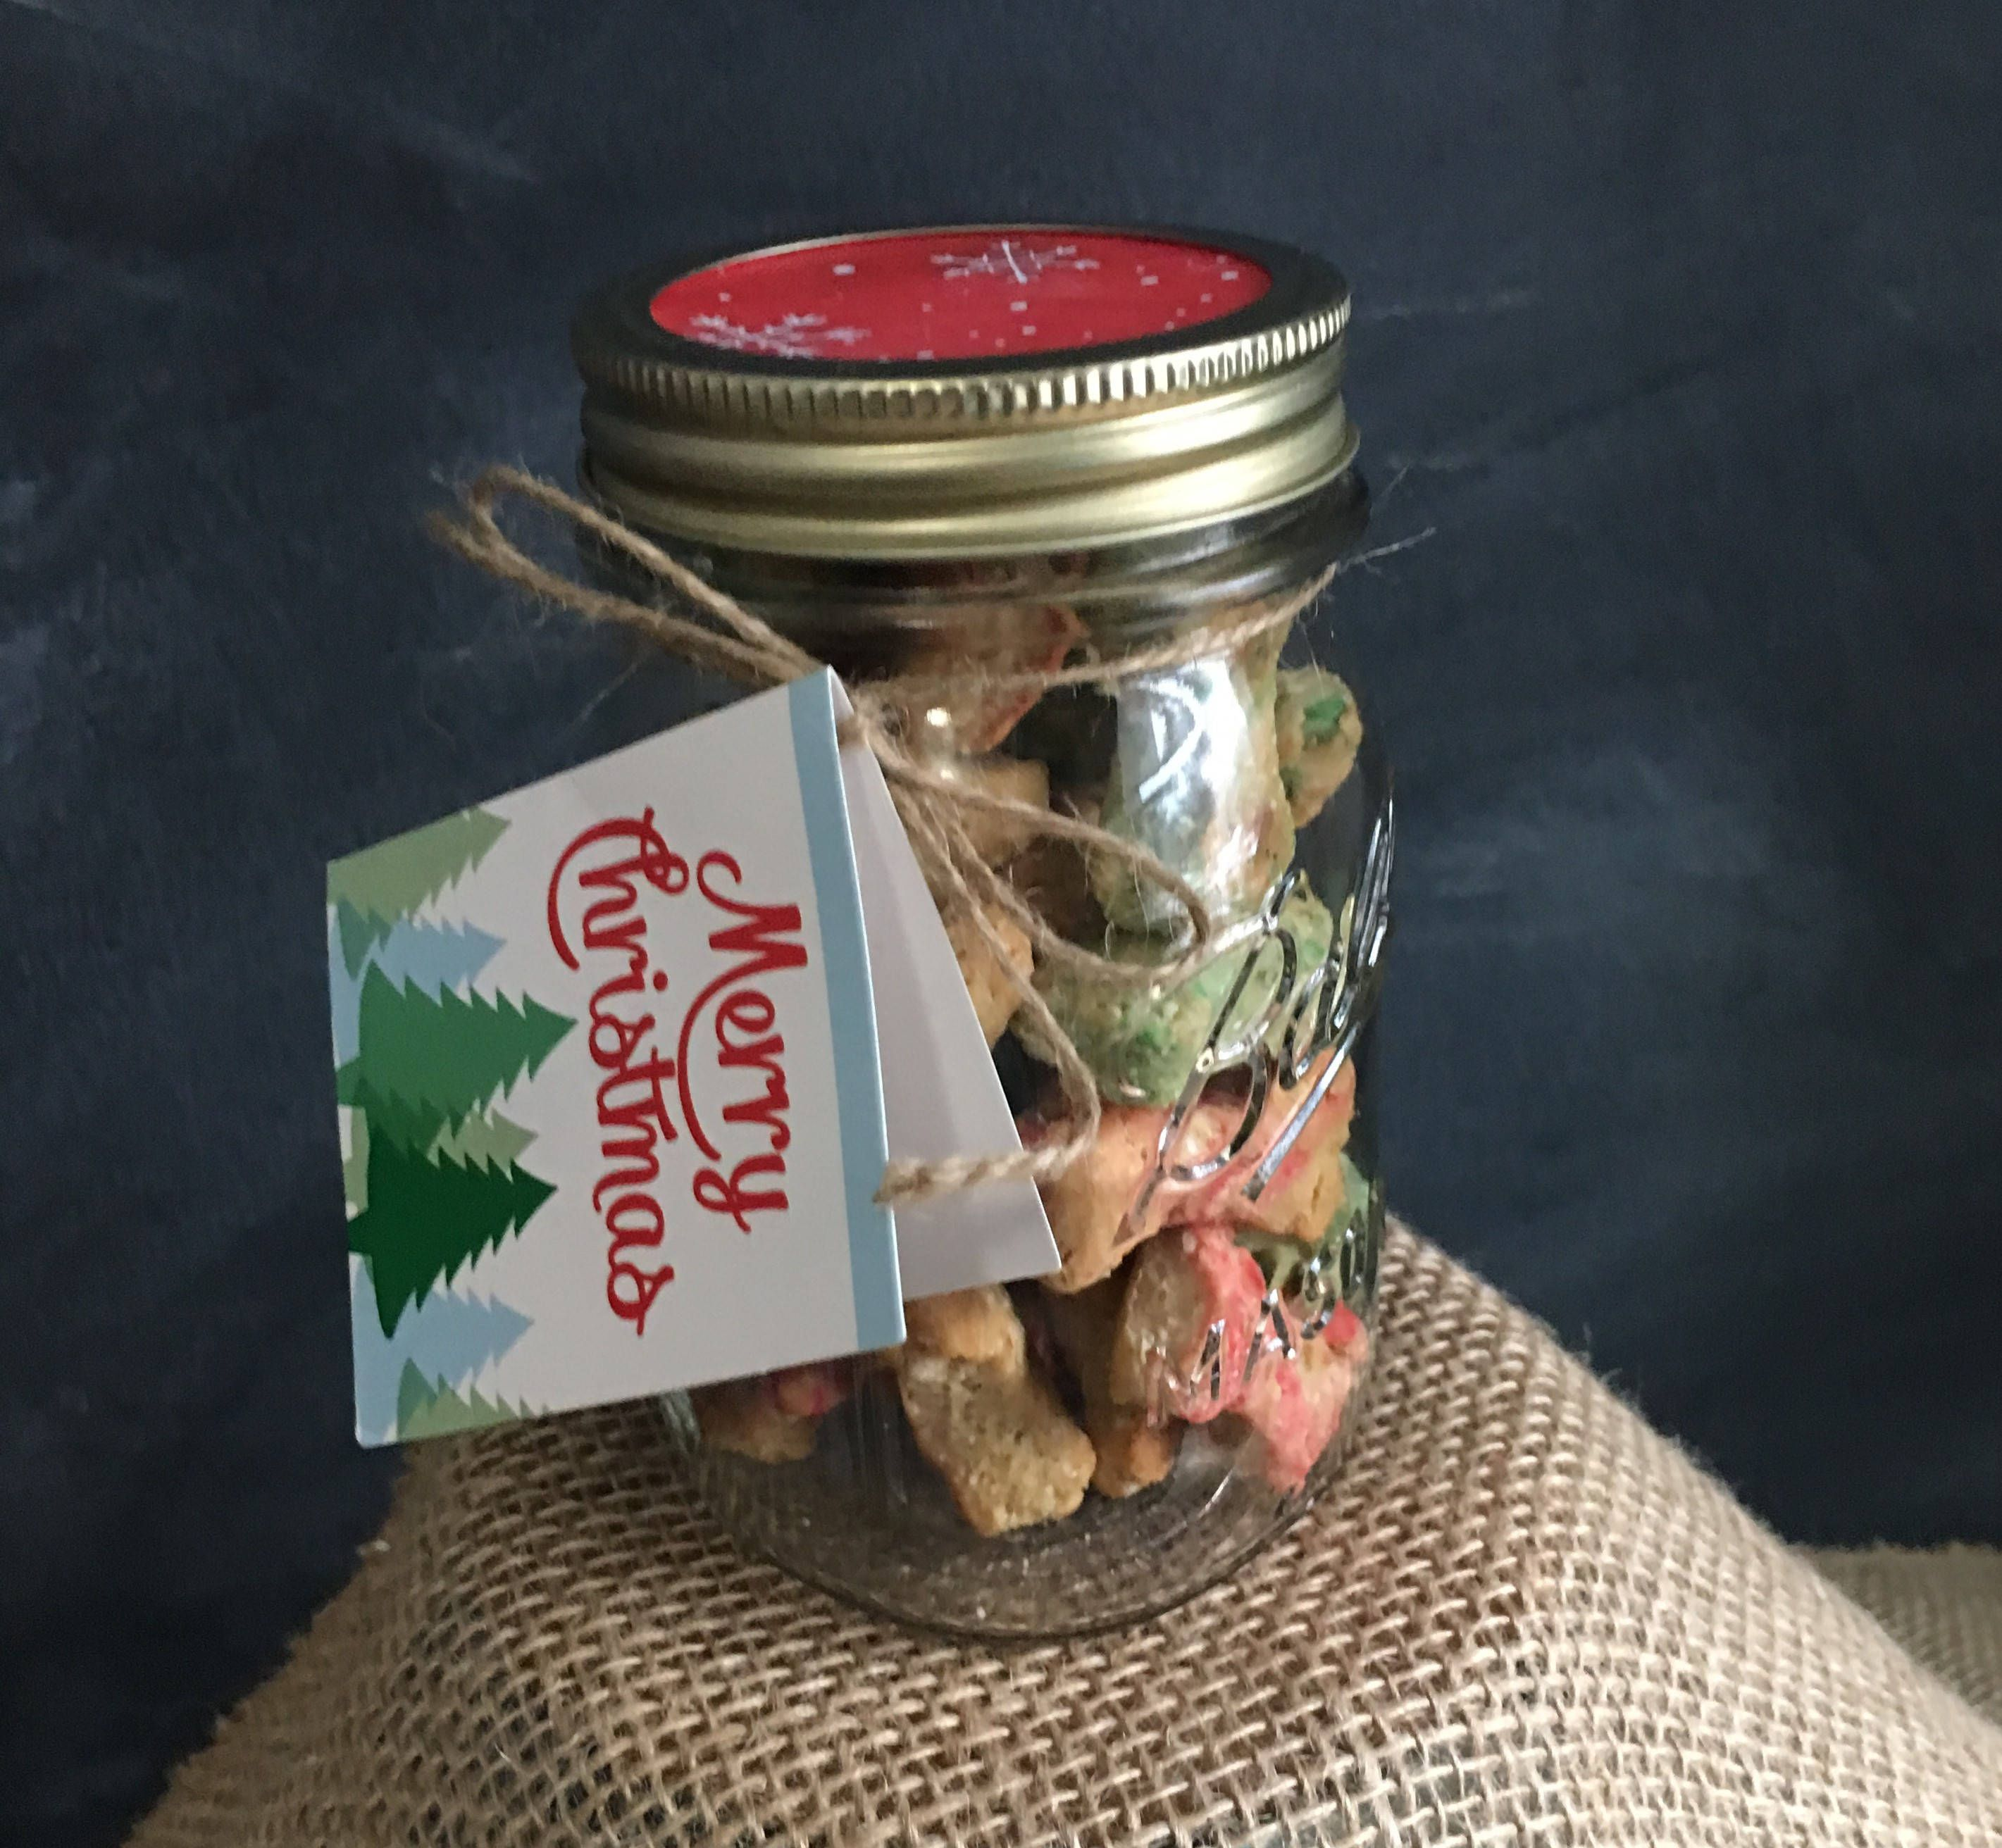 Excited to share the latest addition to my #etsy shop: Christmas Dog Treats with Mason Jar Shipped directly to gift receiver http://etsy.me/2jgQSL2 #pets #treat #christmas #christmasdogtreats #dogtreats #homemade #dogownergift #doggift #masonjardogtreat